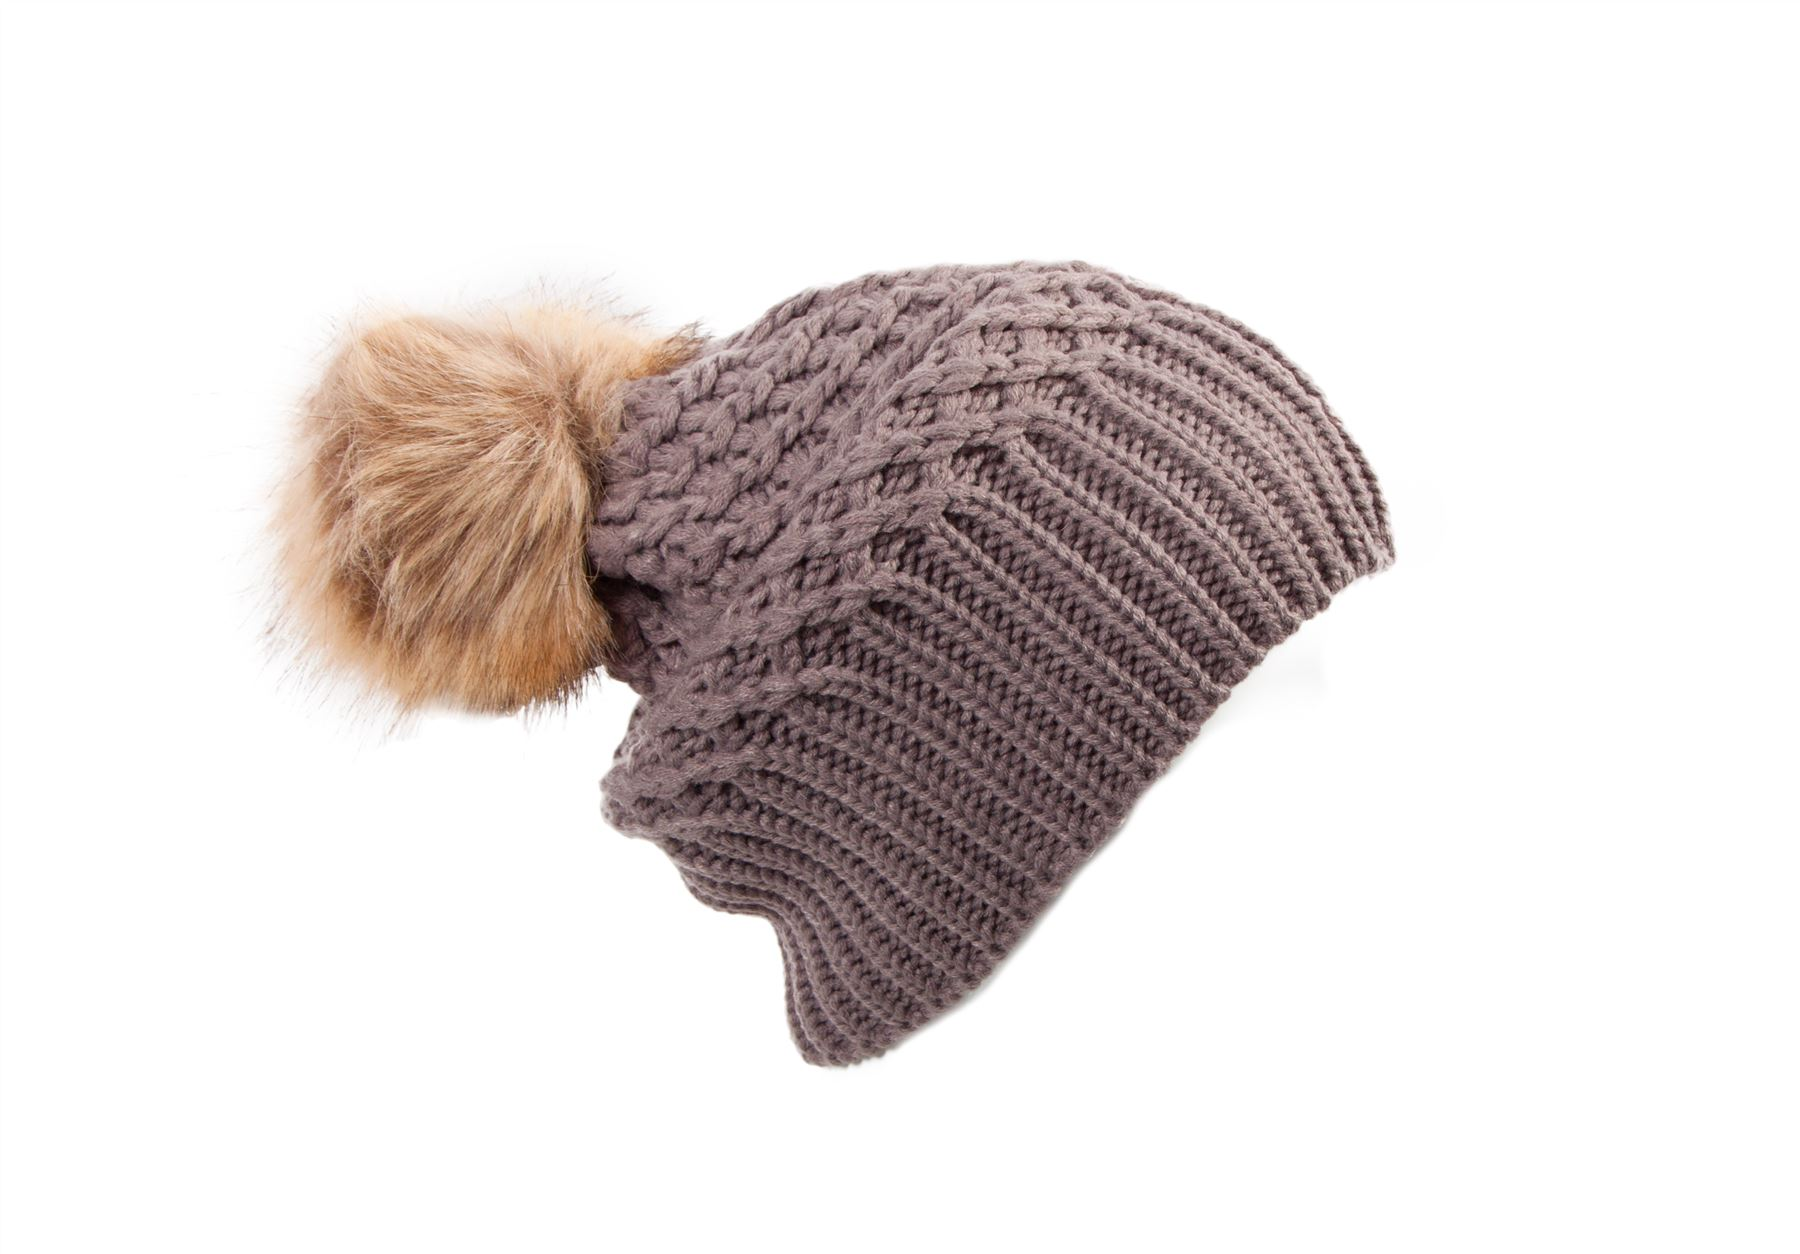 Baggy Bobble Hat Knitting Pattern : U444 LADIES BAGGY SLOUCH OVERSIZE FAKE FUR BOBBLE RIBBED KNITTED BEANIE SKI H...